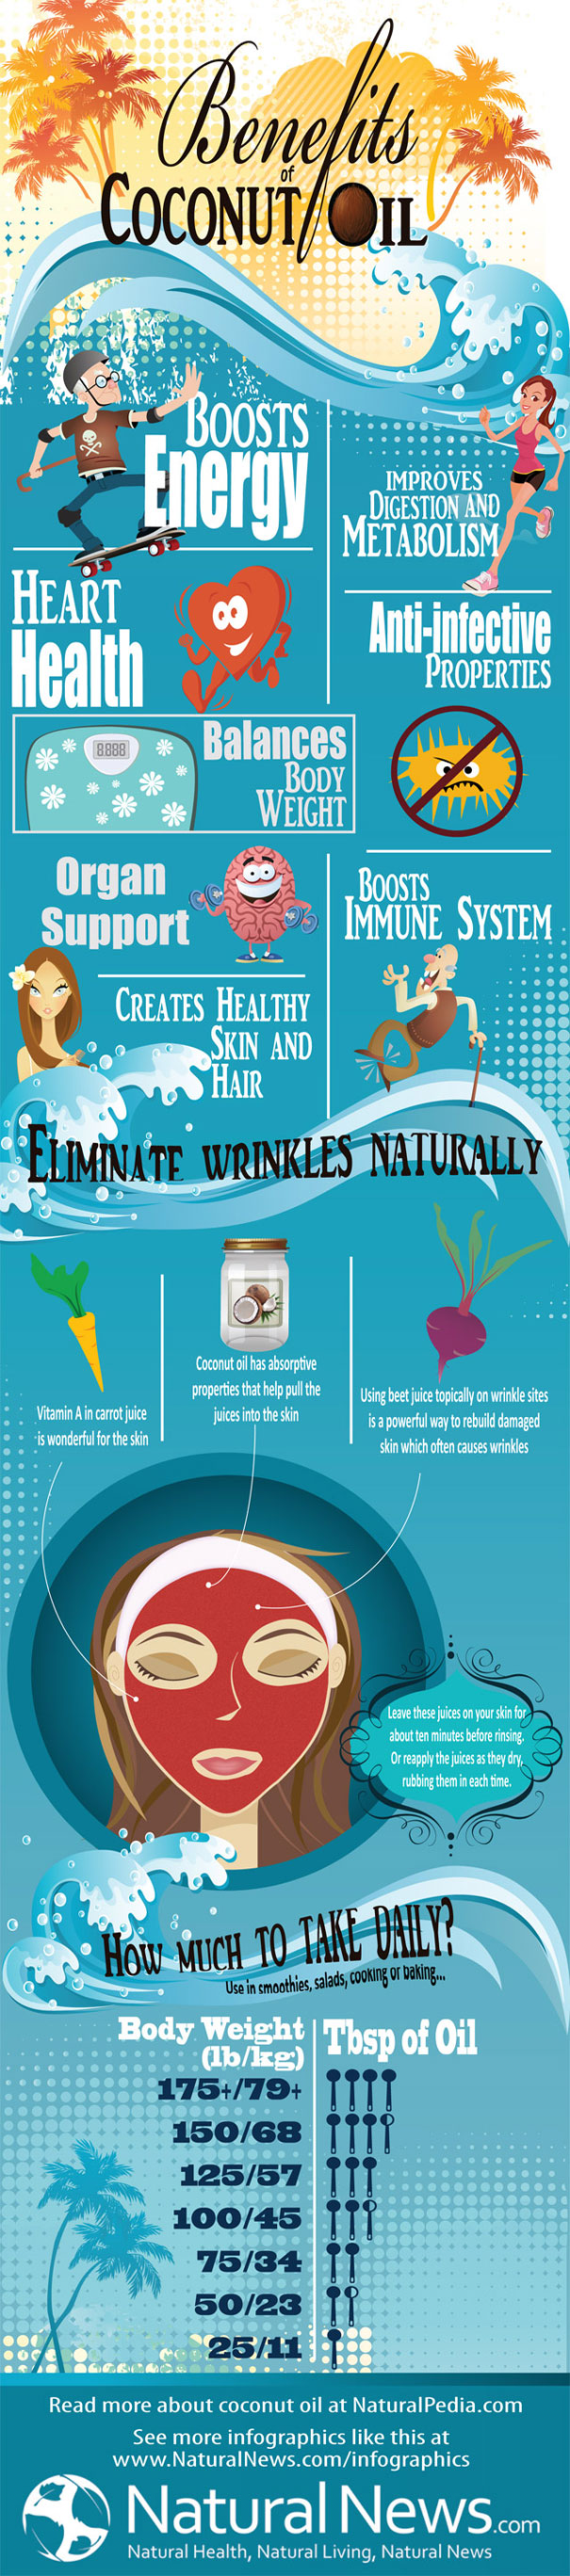 Benefits of Coconut Oil Infographic